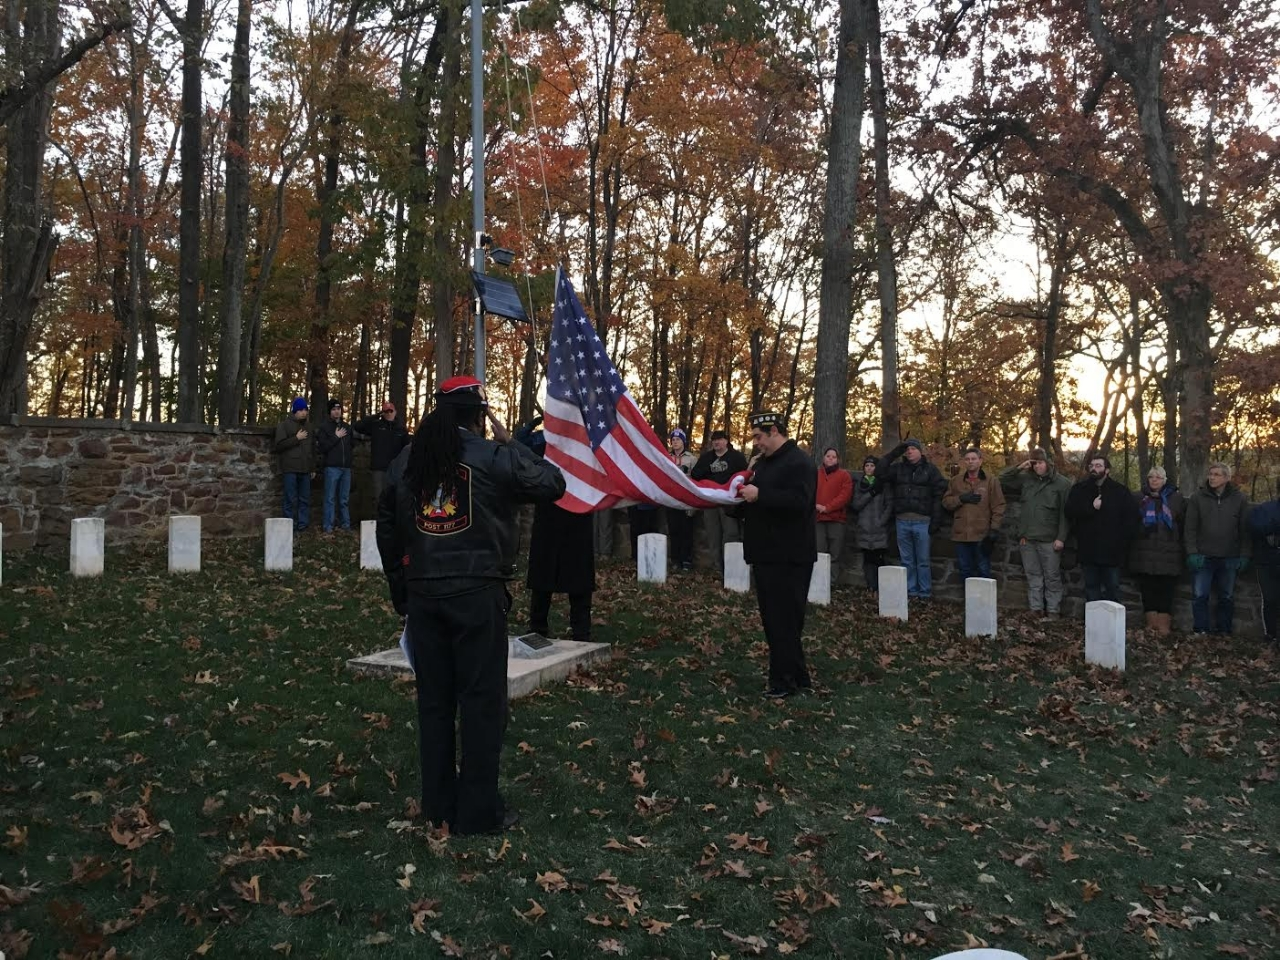 The colors are raised during the Veterans Day Sunrise Ceremony at Balls Bluff.